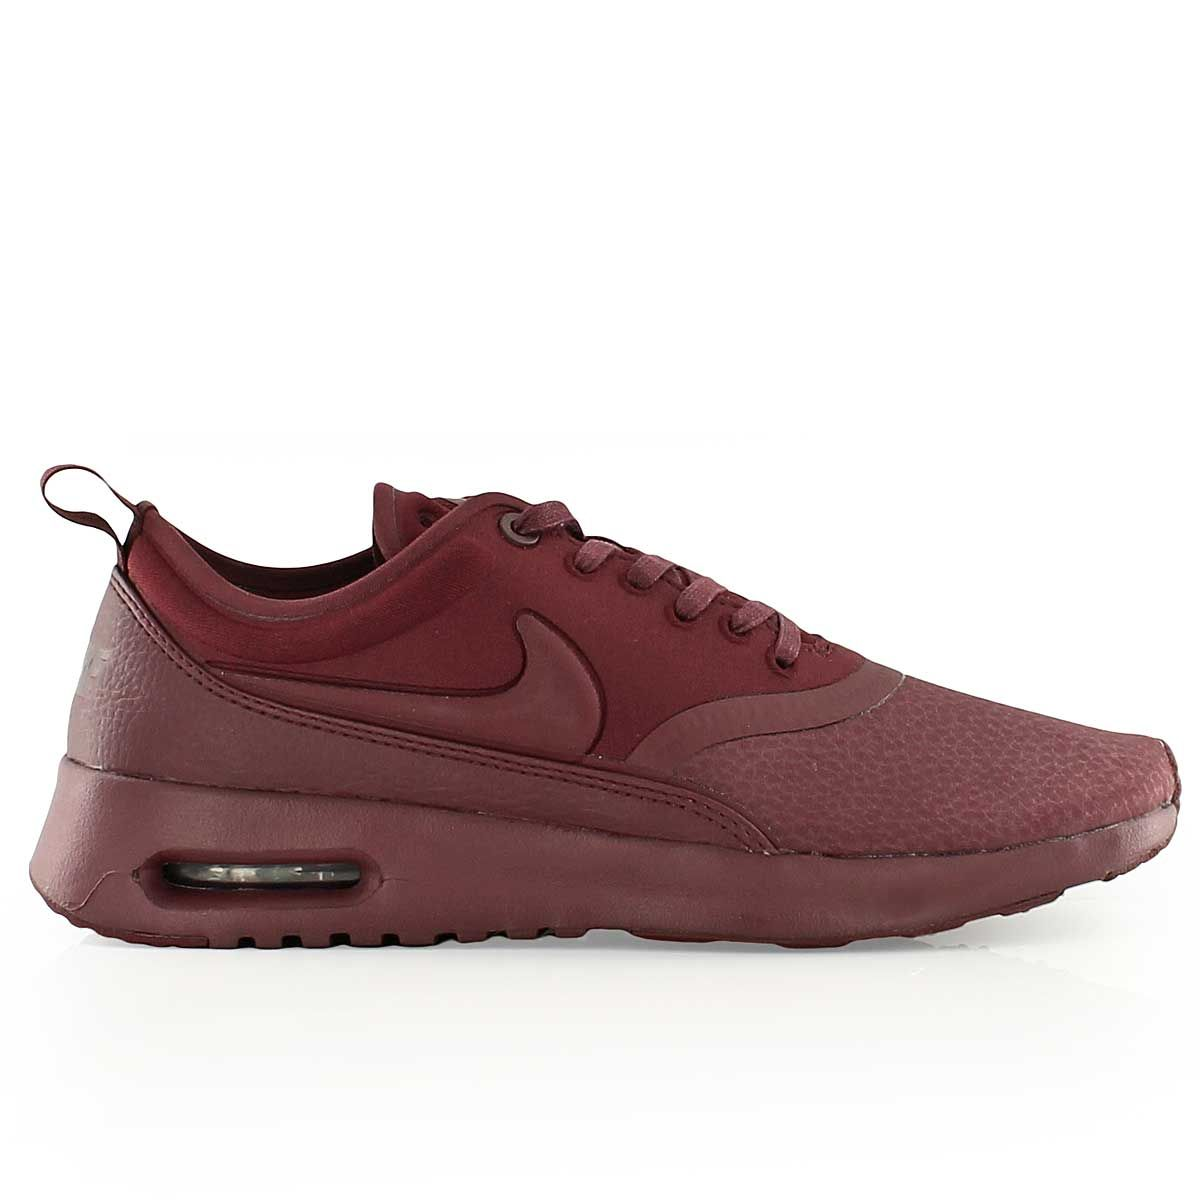 nike W NIKE AIR MAX THEA ULTRA PRM NIGHT MAROONNIGHT MAROON